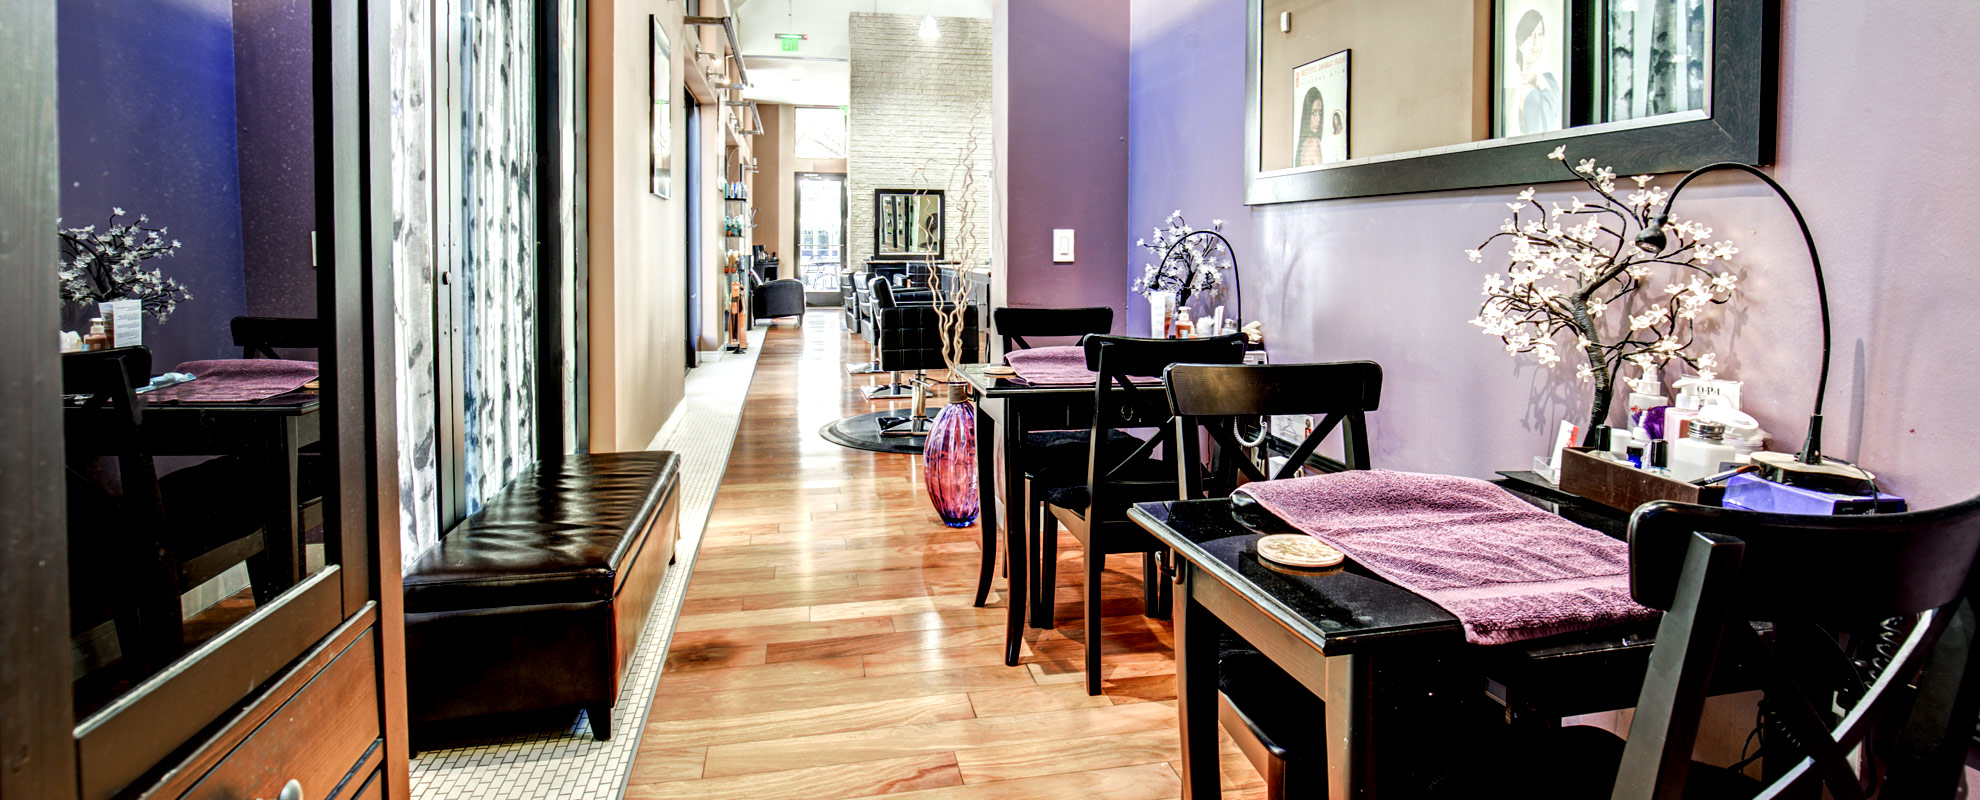 Instyle Hair Salon Interior